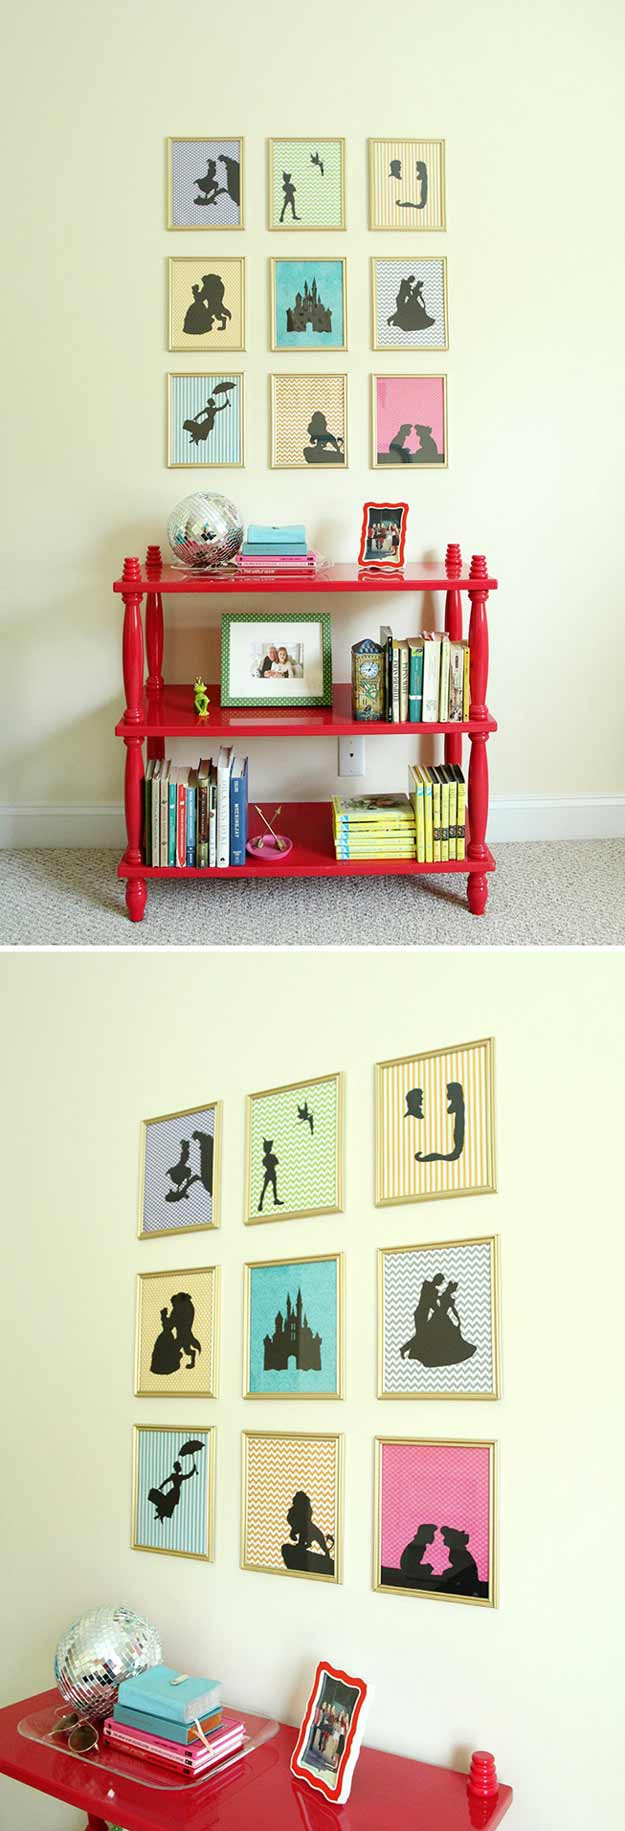 Best ideas about DIY Room Decorations For Teenage Girls . Save or Pin 15 DIY Teen Girl Room Ideas Now.